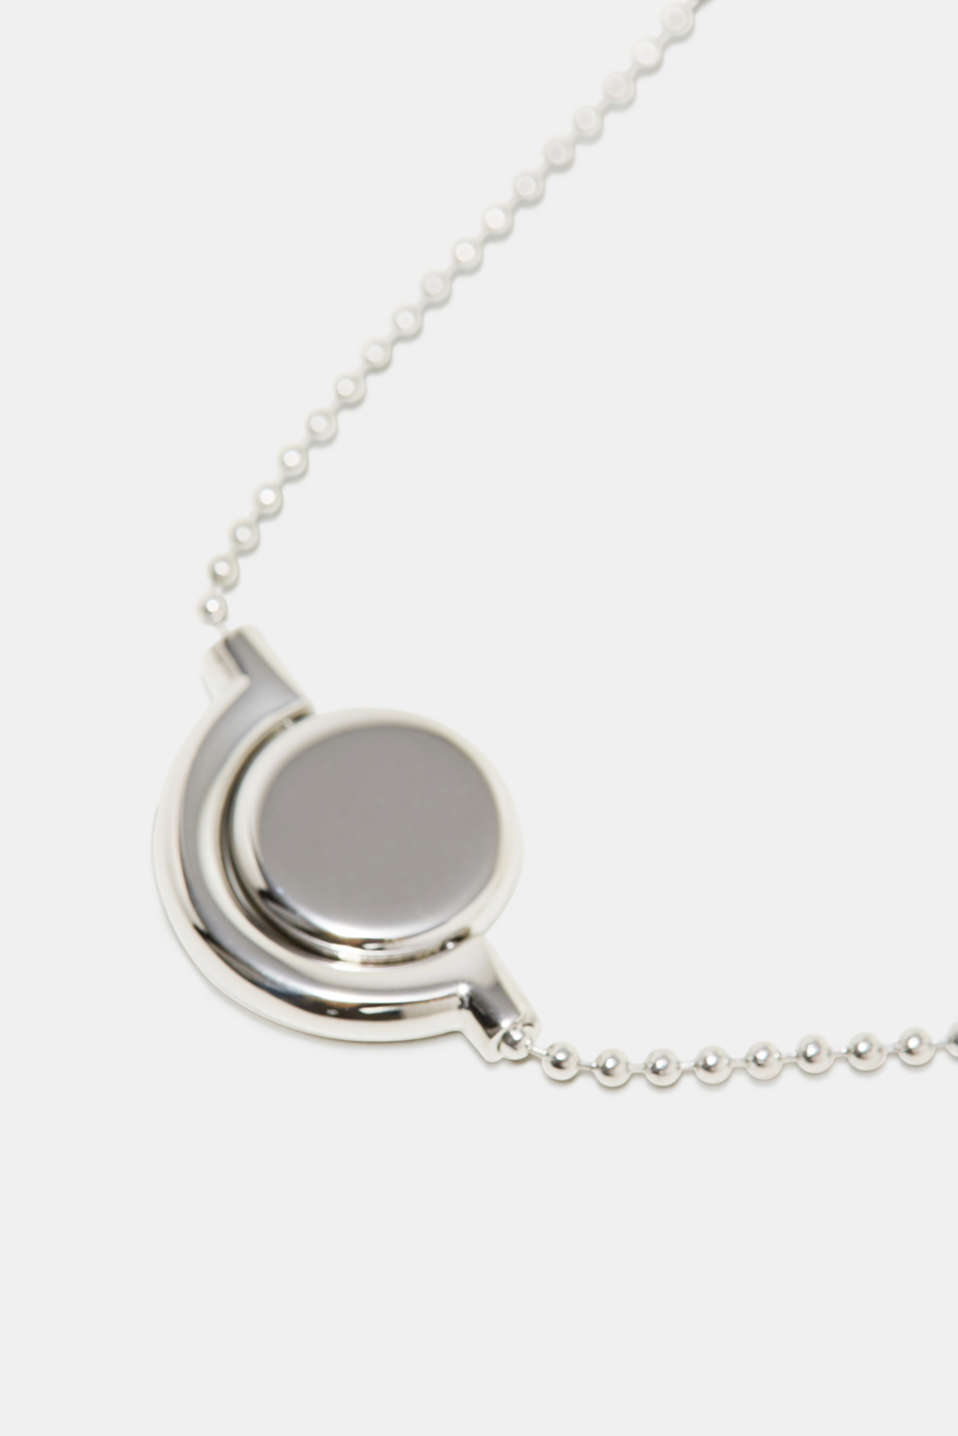 Stainless steel bracelet with a rotating pendant